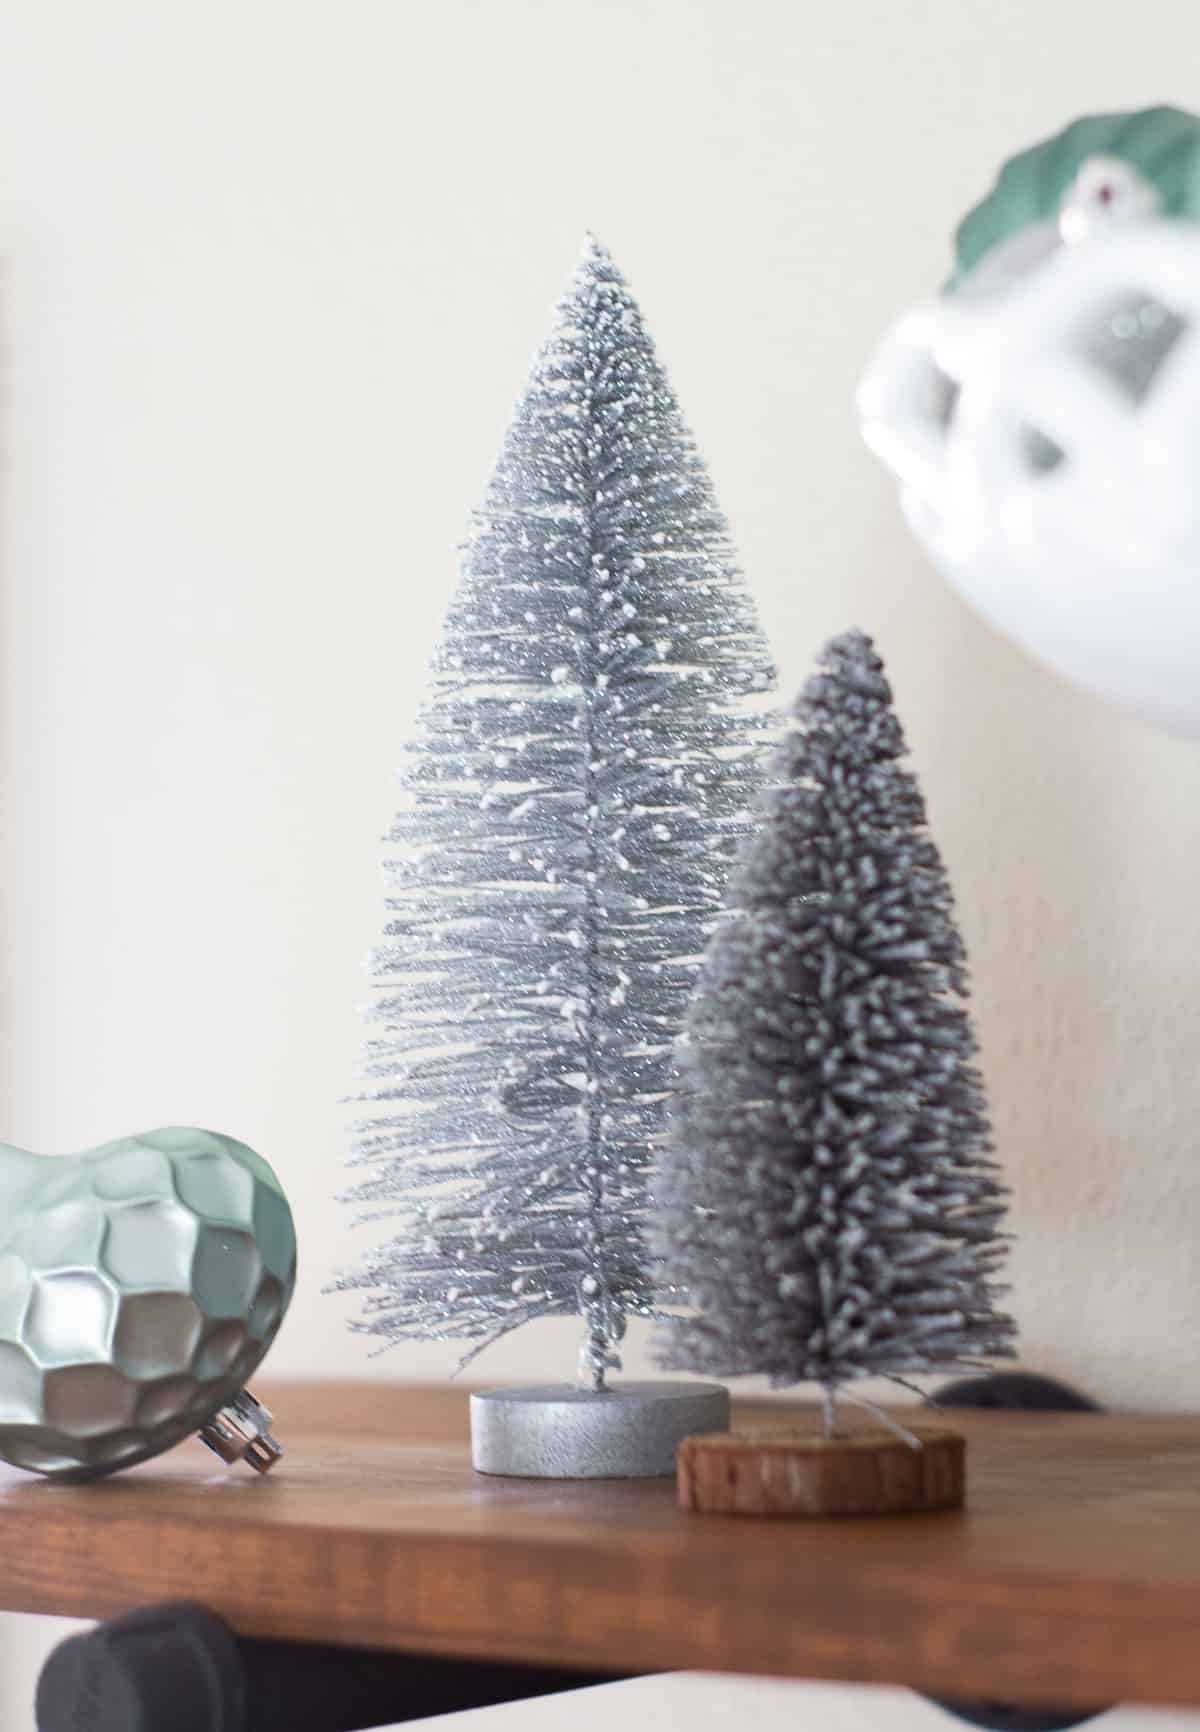 sparkly bottle brush tree with ornaments on shelf